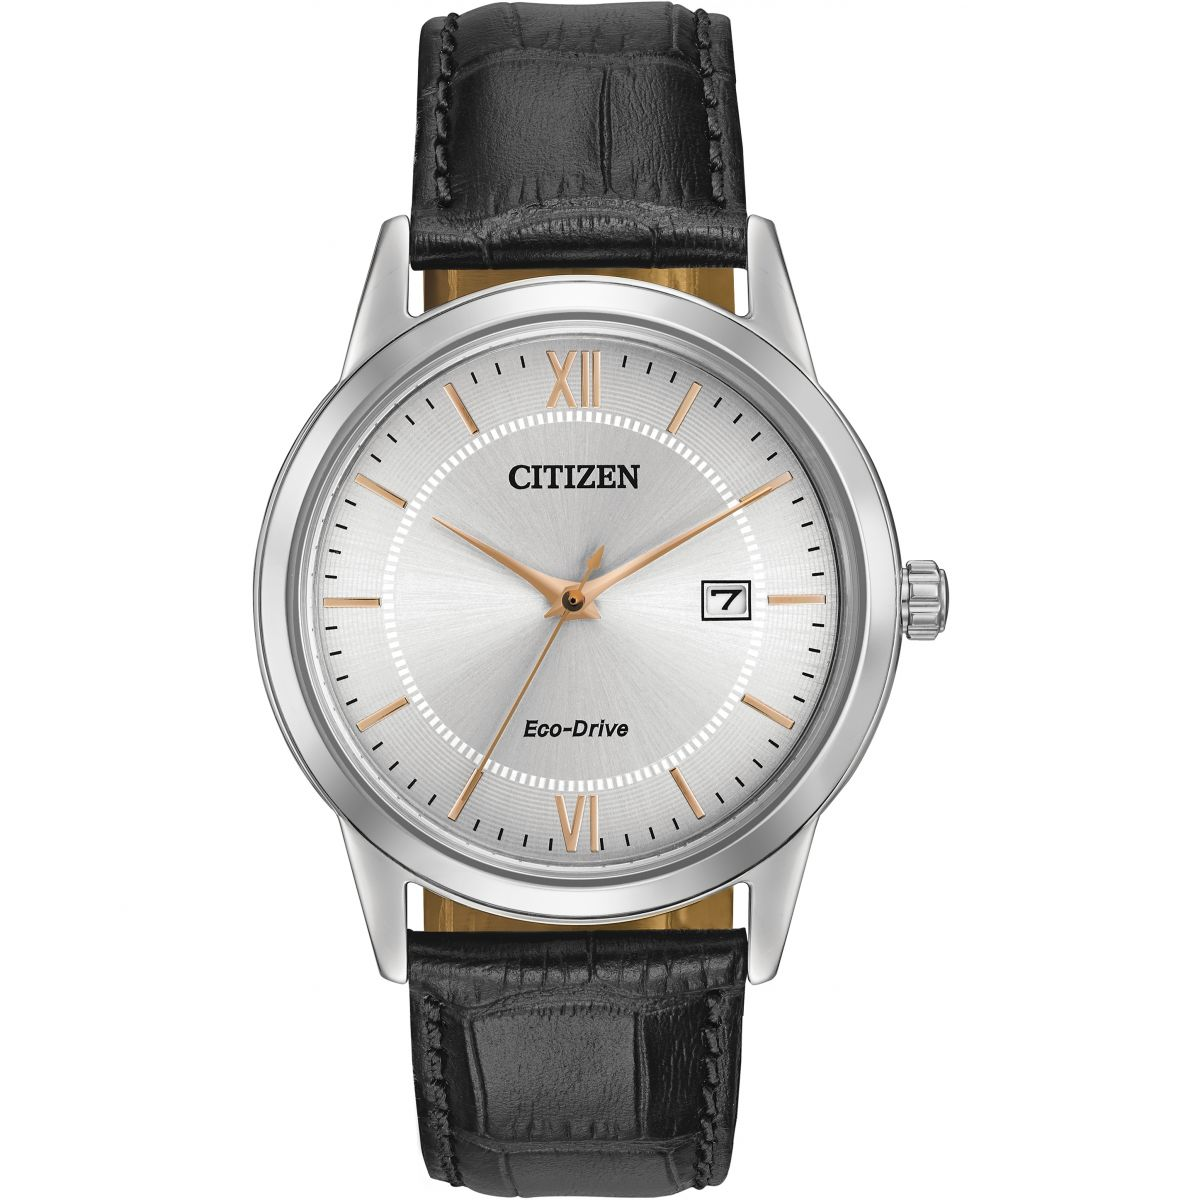 gents citizen watch aw1236 03a watchshop com rh watchshop com citizen watches co nz instruction manuals Citizen Eco-Drive Divers Watches